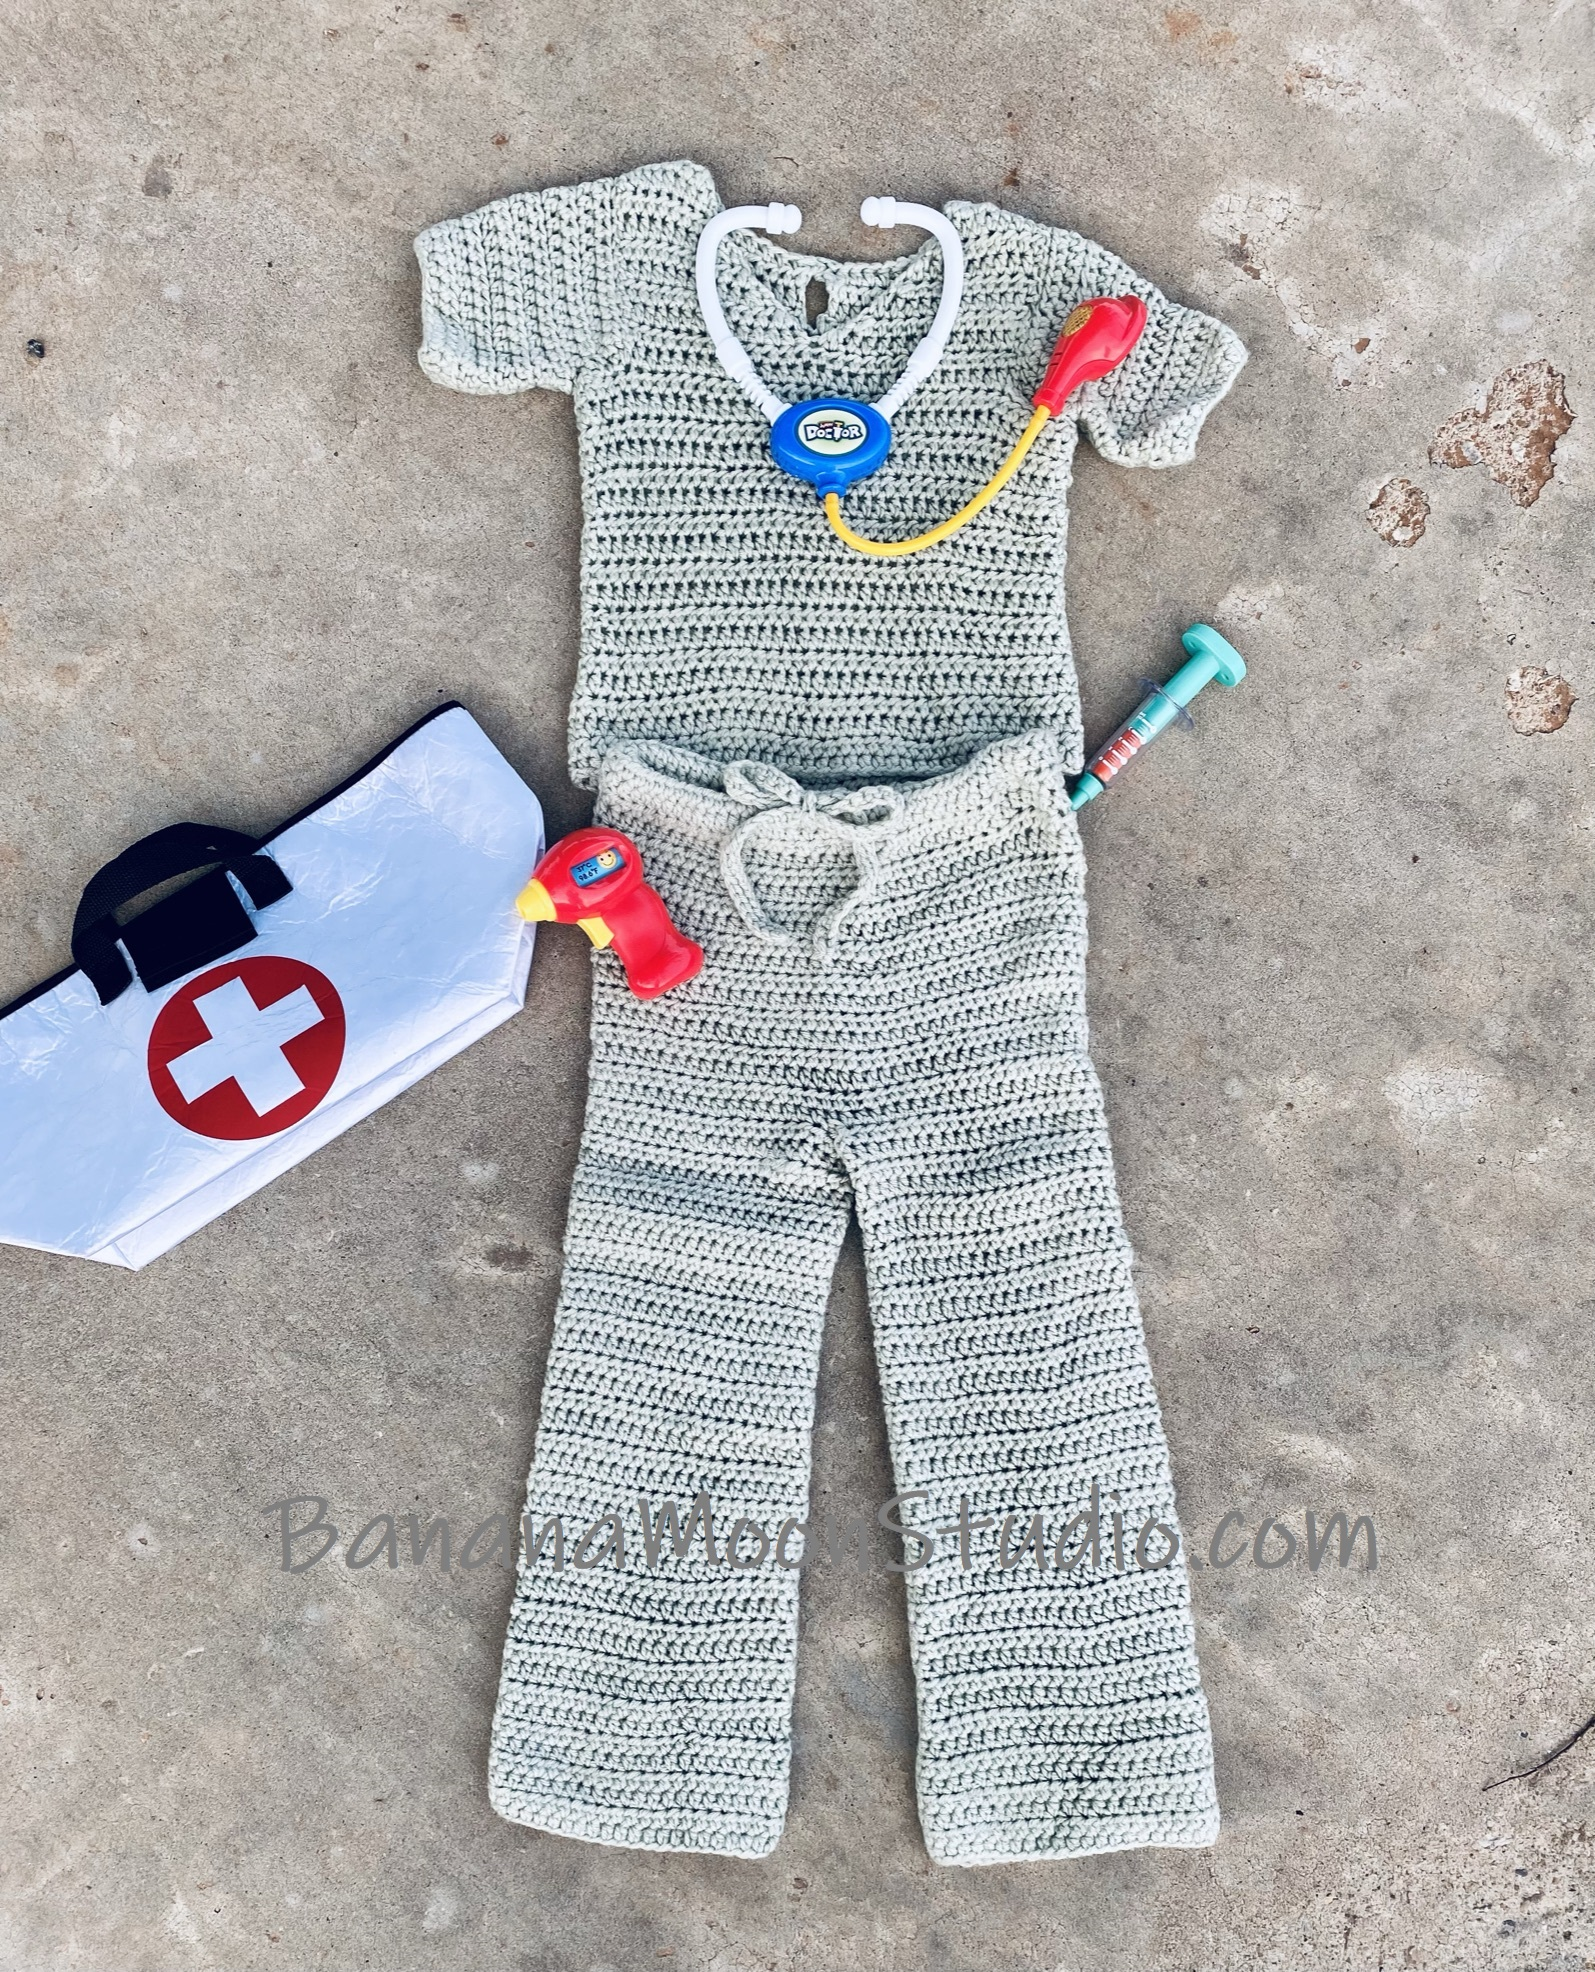 Crochet top and pants to look like doctor's scrubs lying on a cement background. Various children's doctor toys and bag. Text reads: BananaMoonStudio.com.